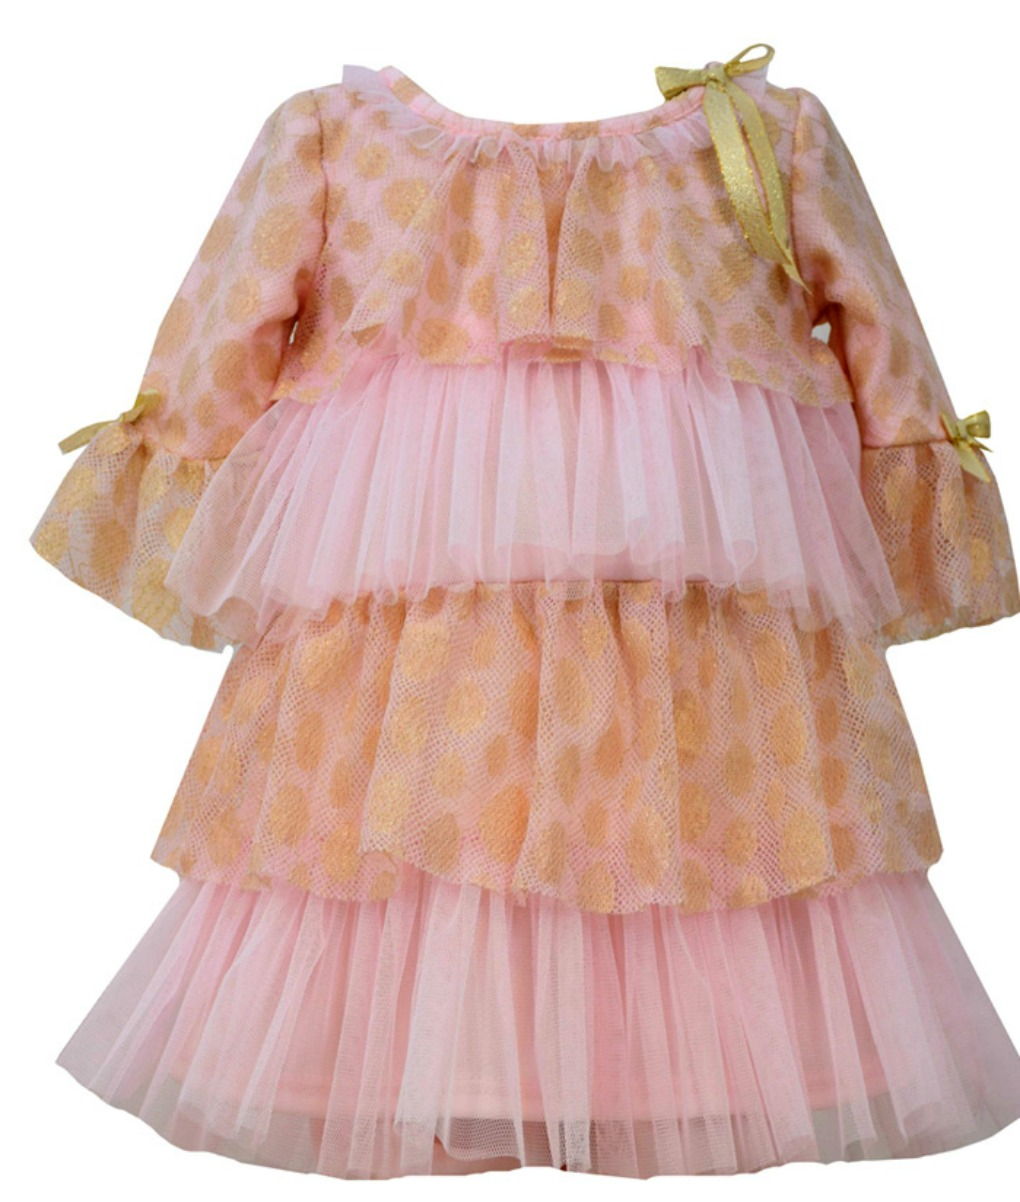 Bonnie Jean Little Girls Pink Gold Tiered Party Dress 3T